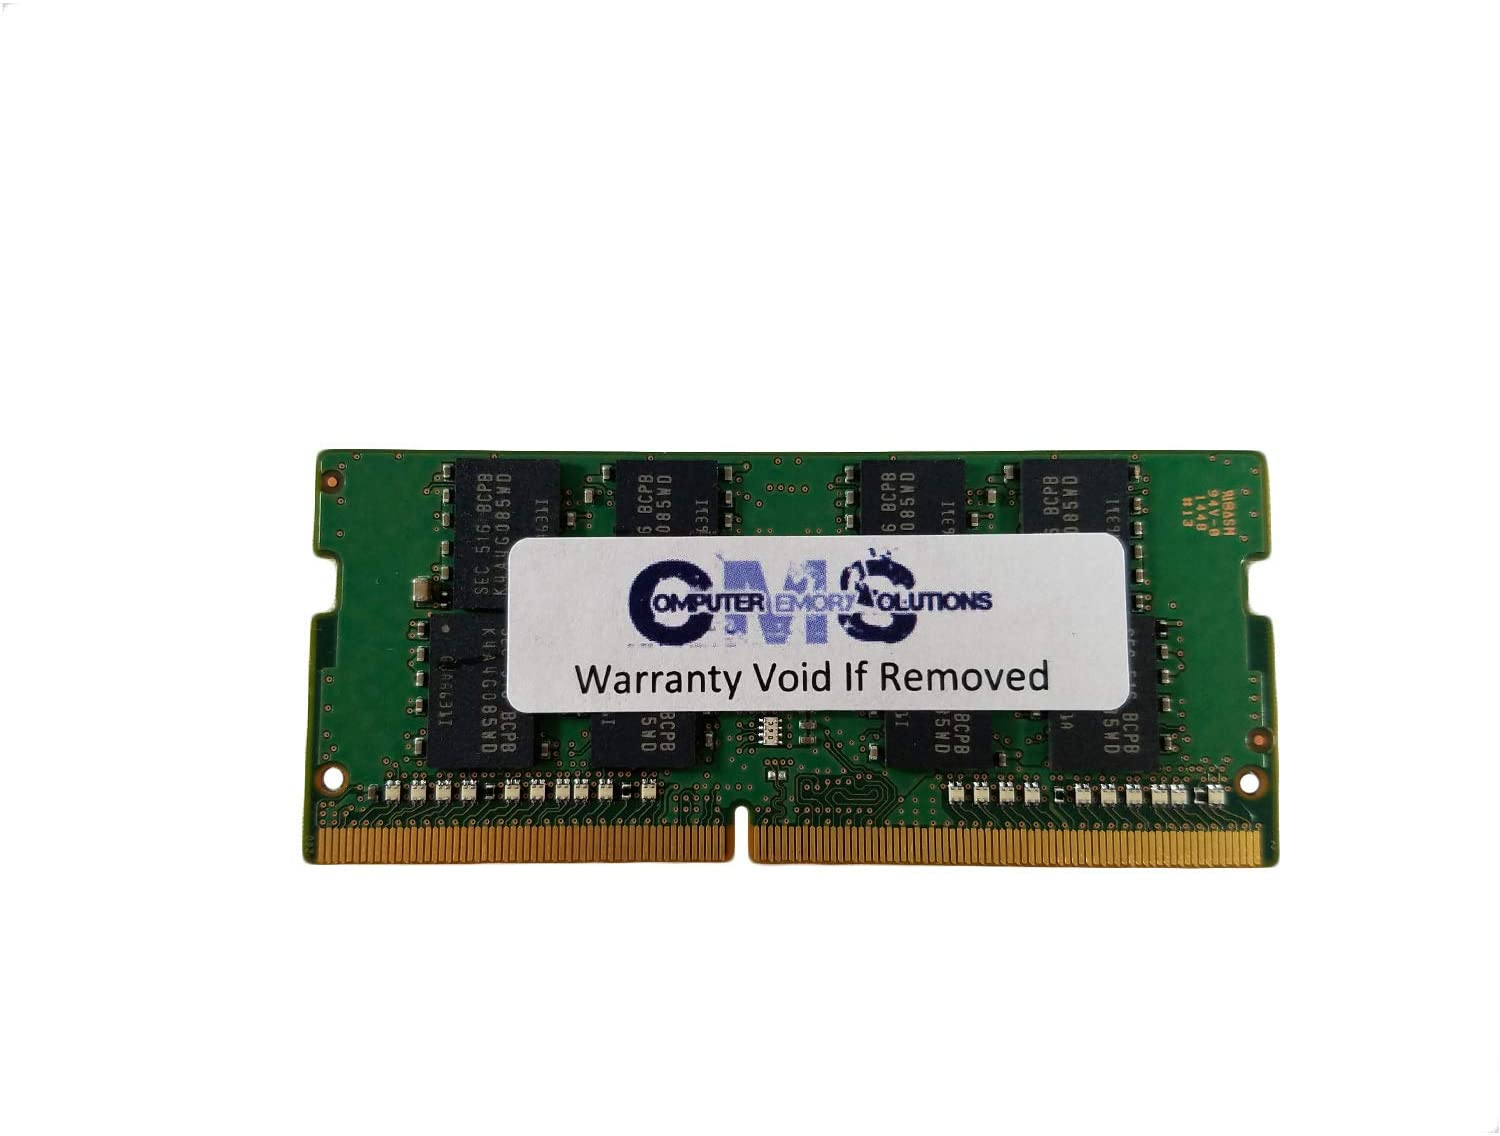 4GB (1X4GB) Memory Ram Compatible with MSI Notebook GS62 6QD Apache Pro, GS63 7RD Stealth, GS63 7RE Stealth Pro, by CMS c105